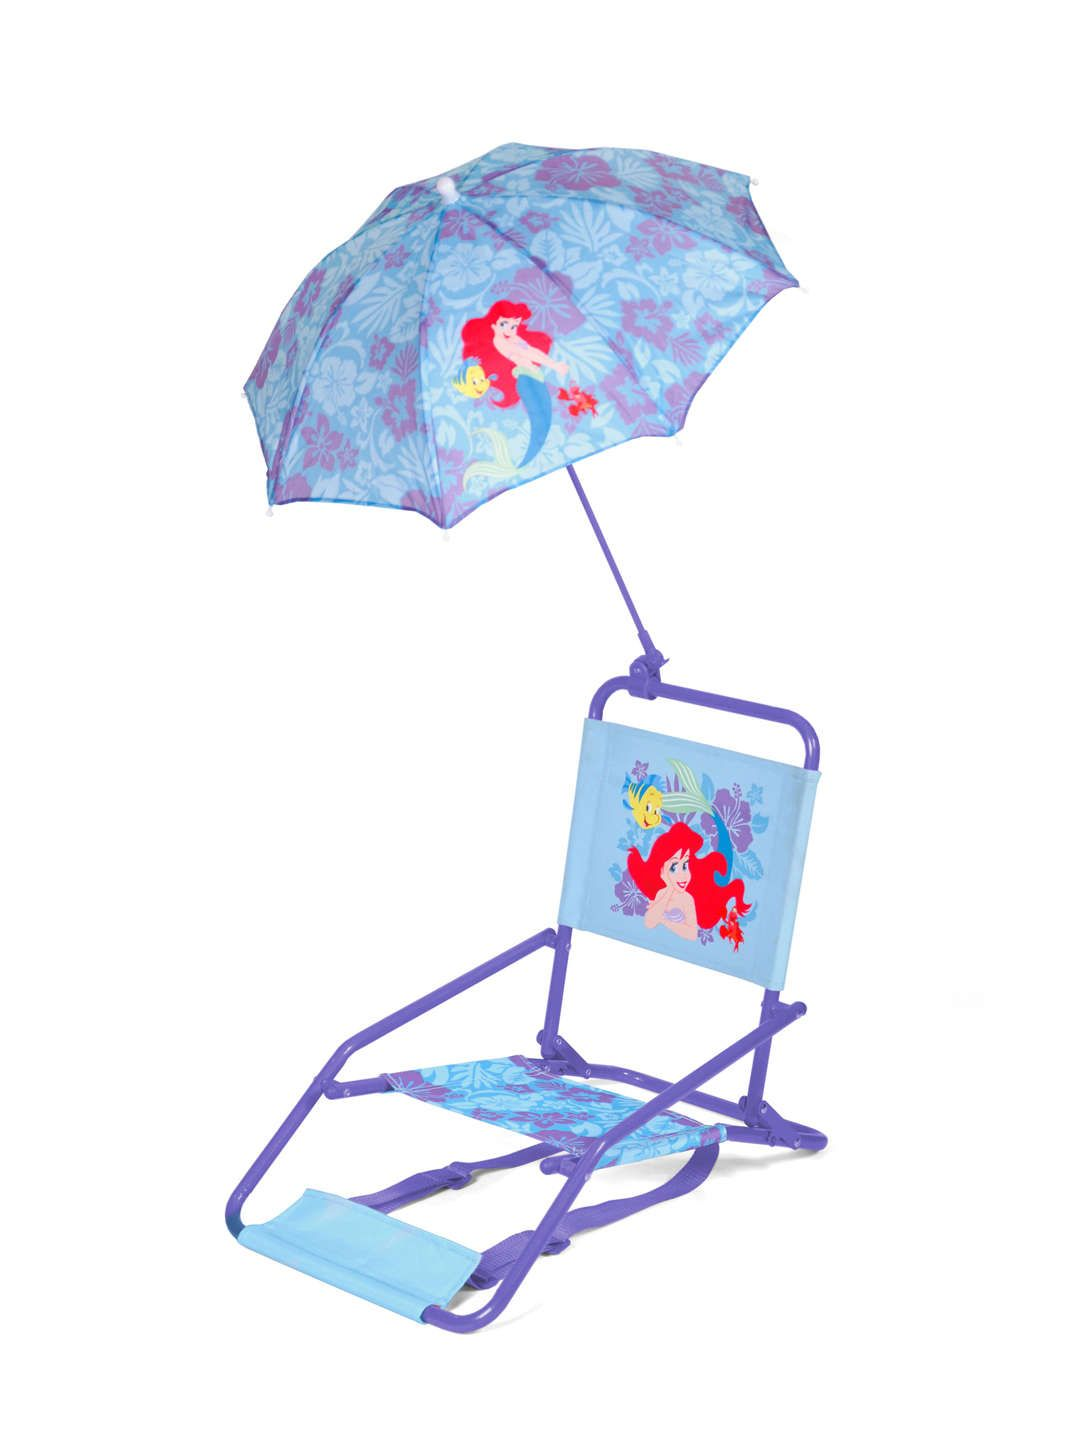 Infant Beach Chair With Umbrella The Health Disney Ariel Chairs And